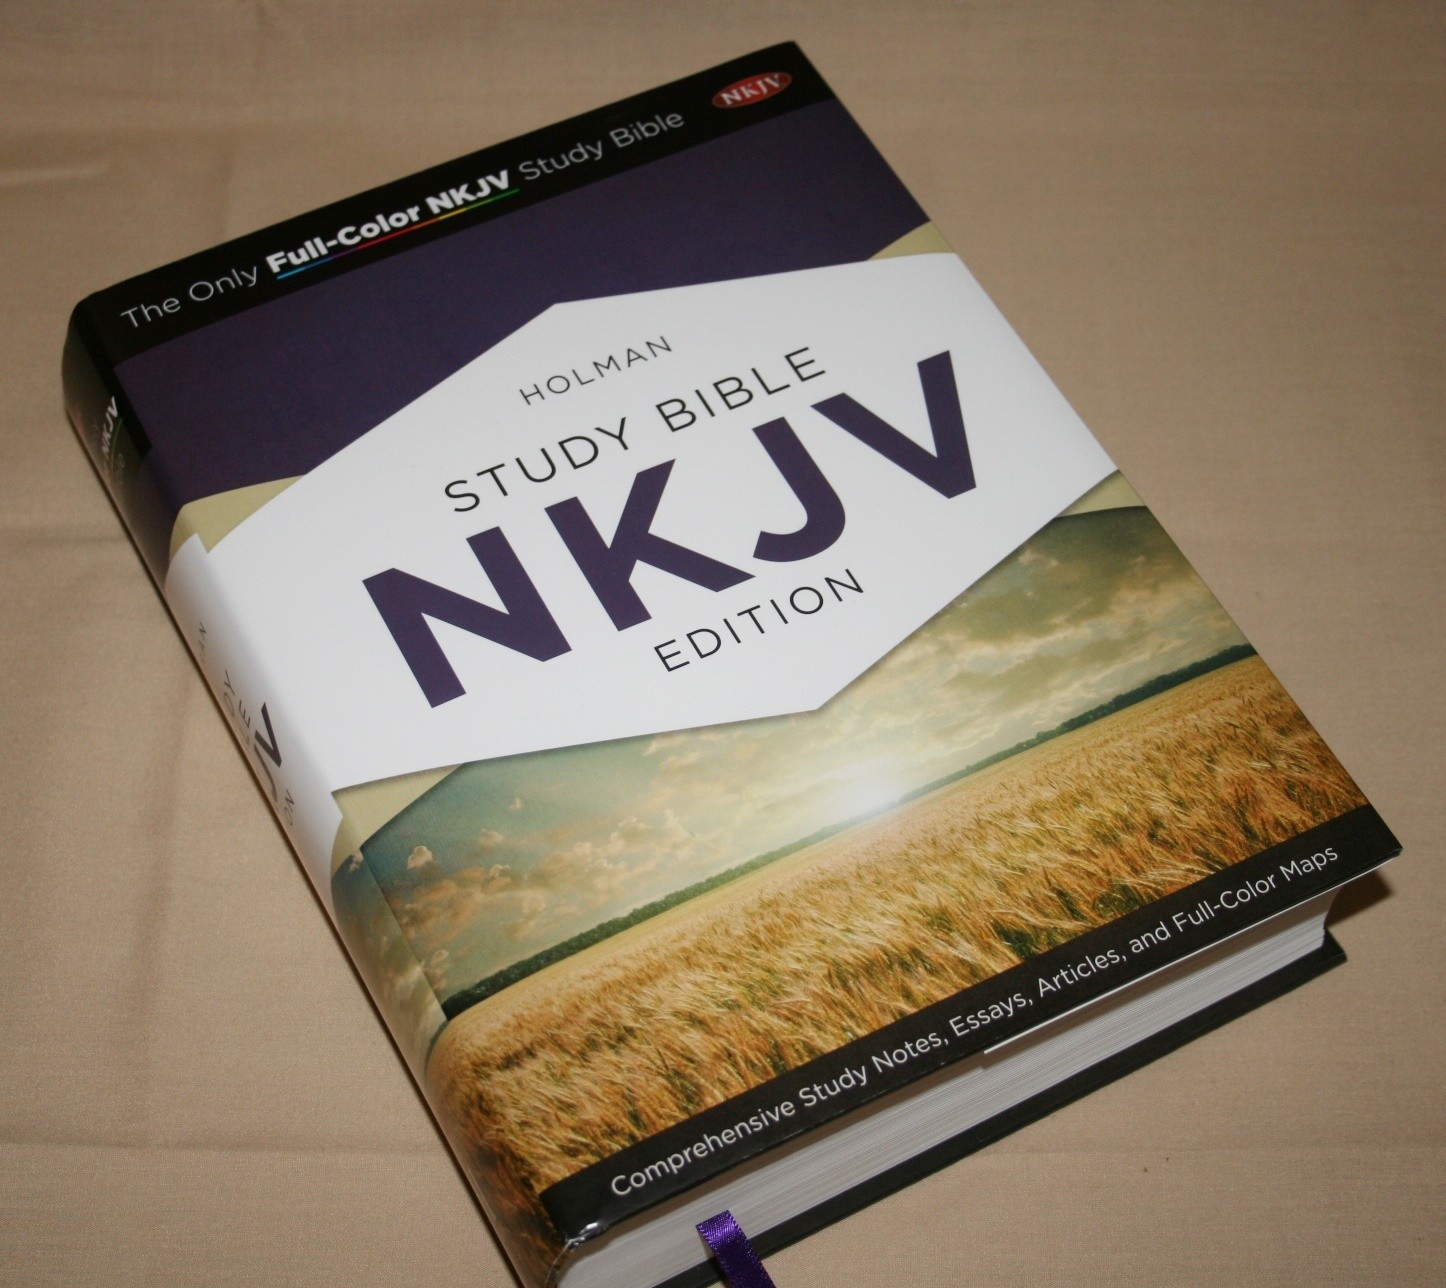 Holman Nkjv Study Bible Review